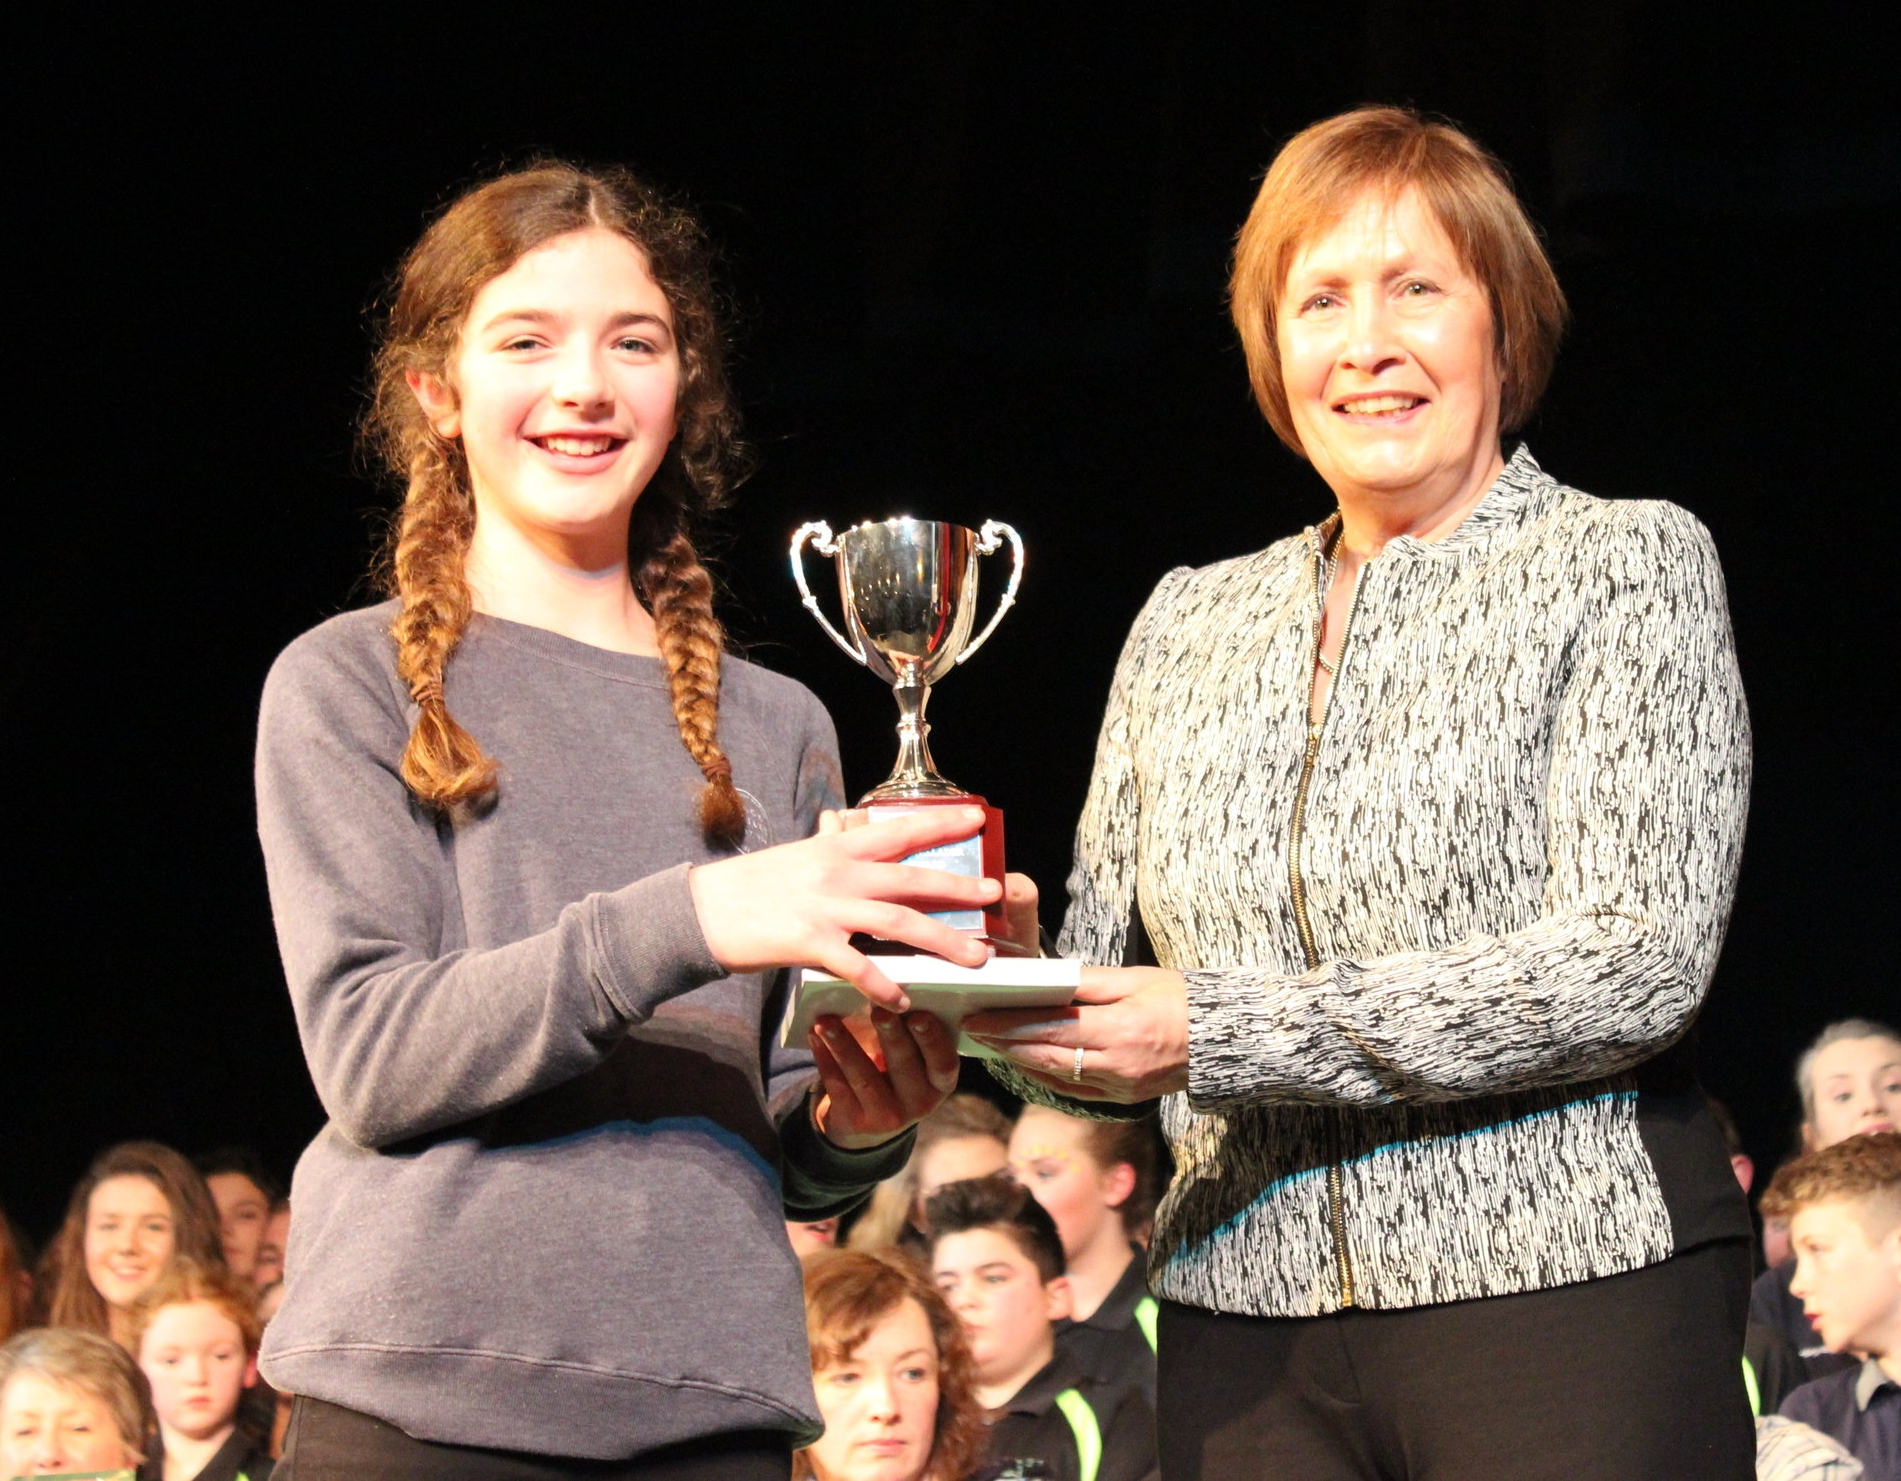 Hannah Jones - Radnor Valley YFC - Ray Cadwallader Award - Best Actress 13 & Under